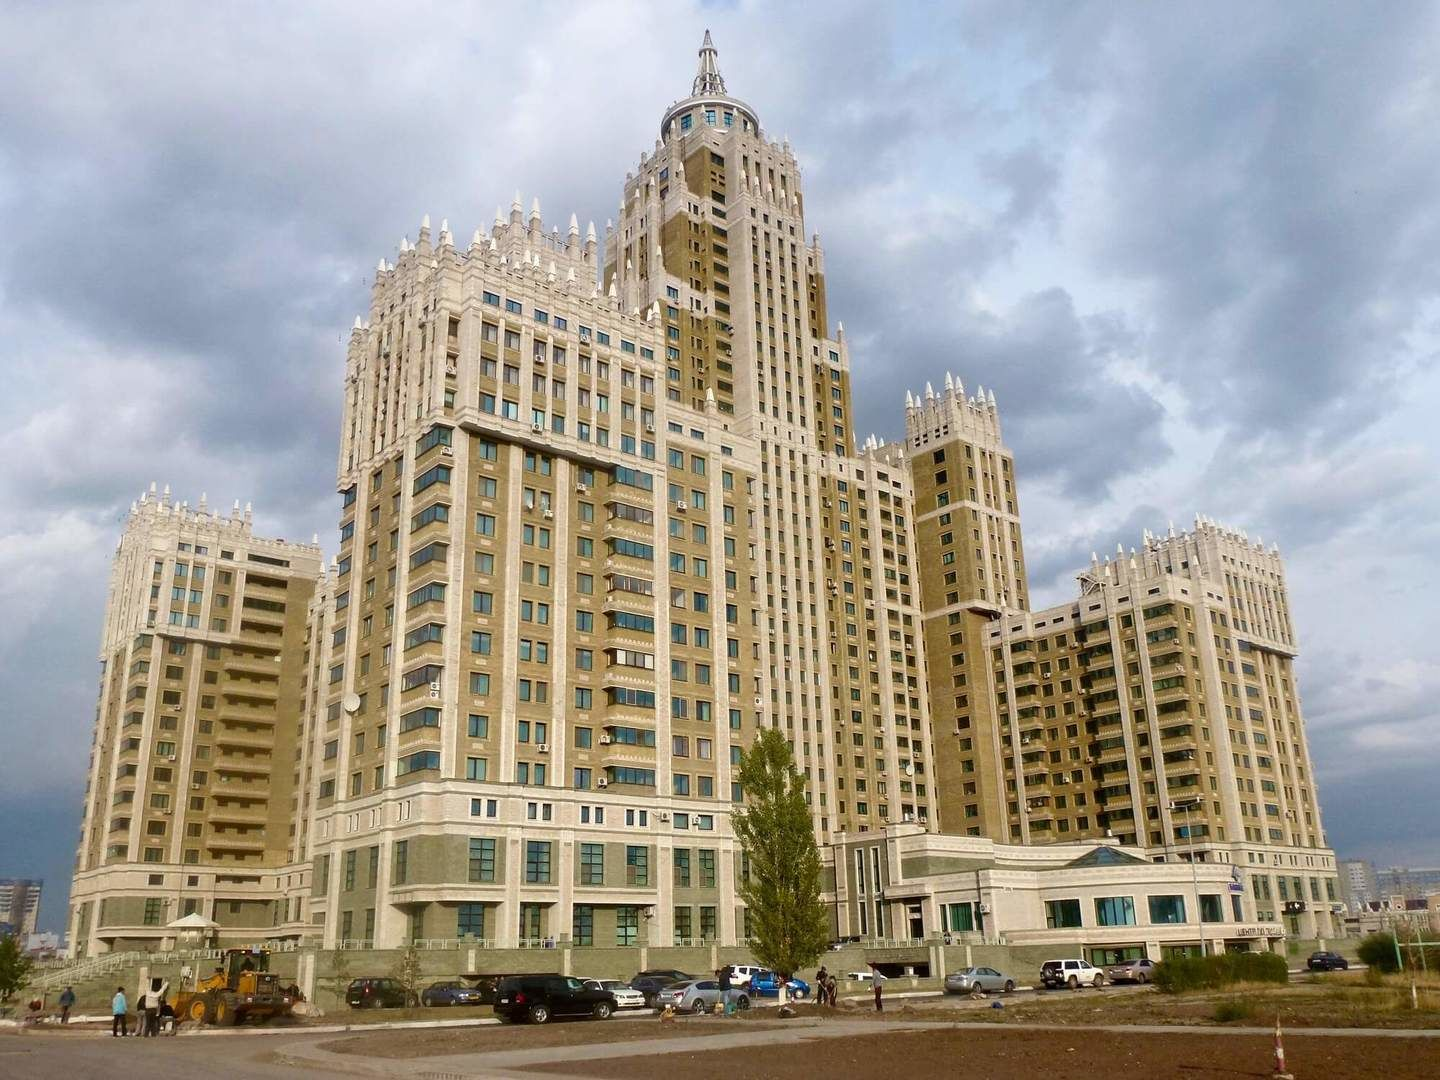 Astana architecture, The triumph of Astana